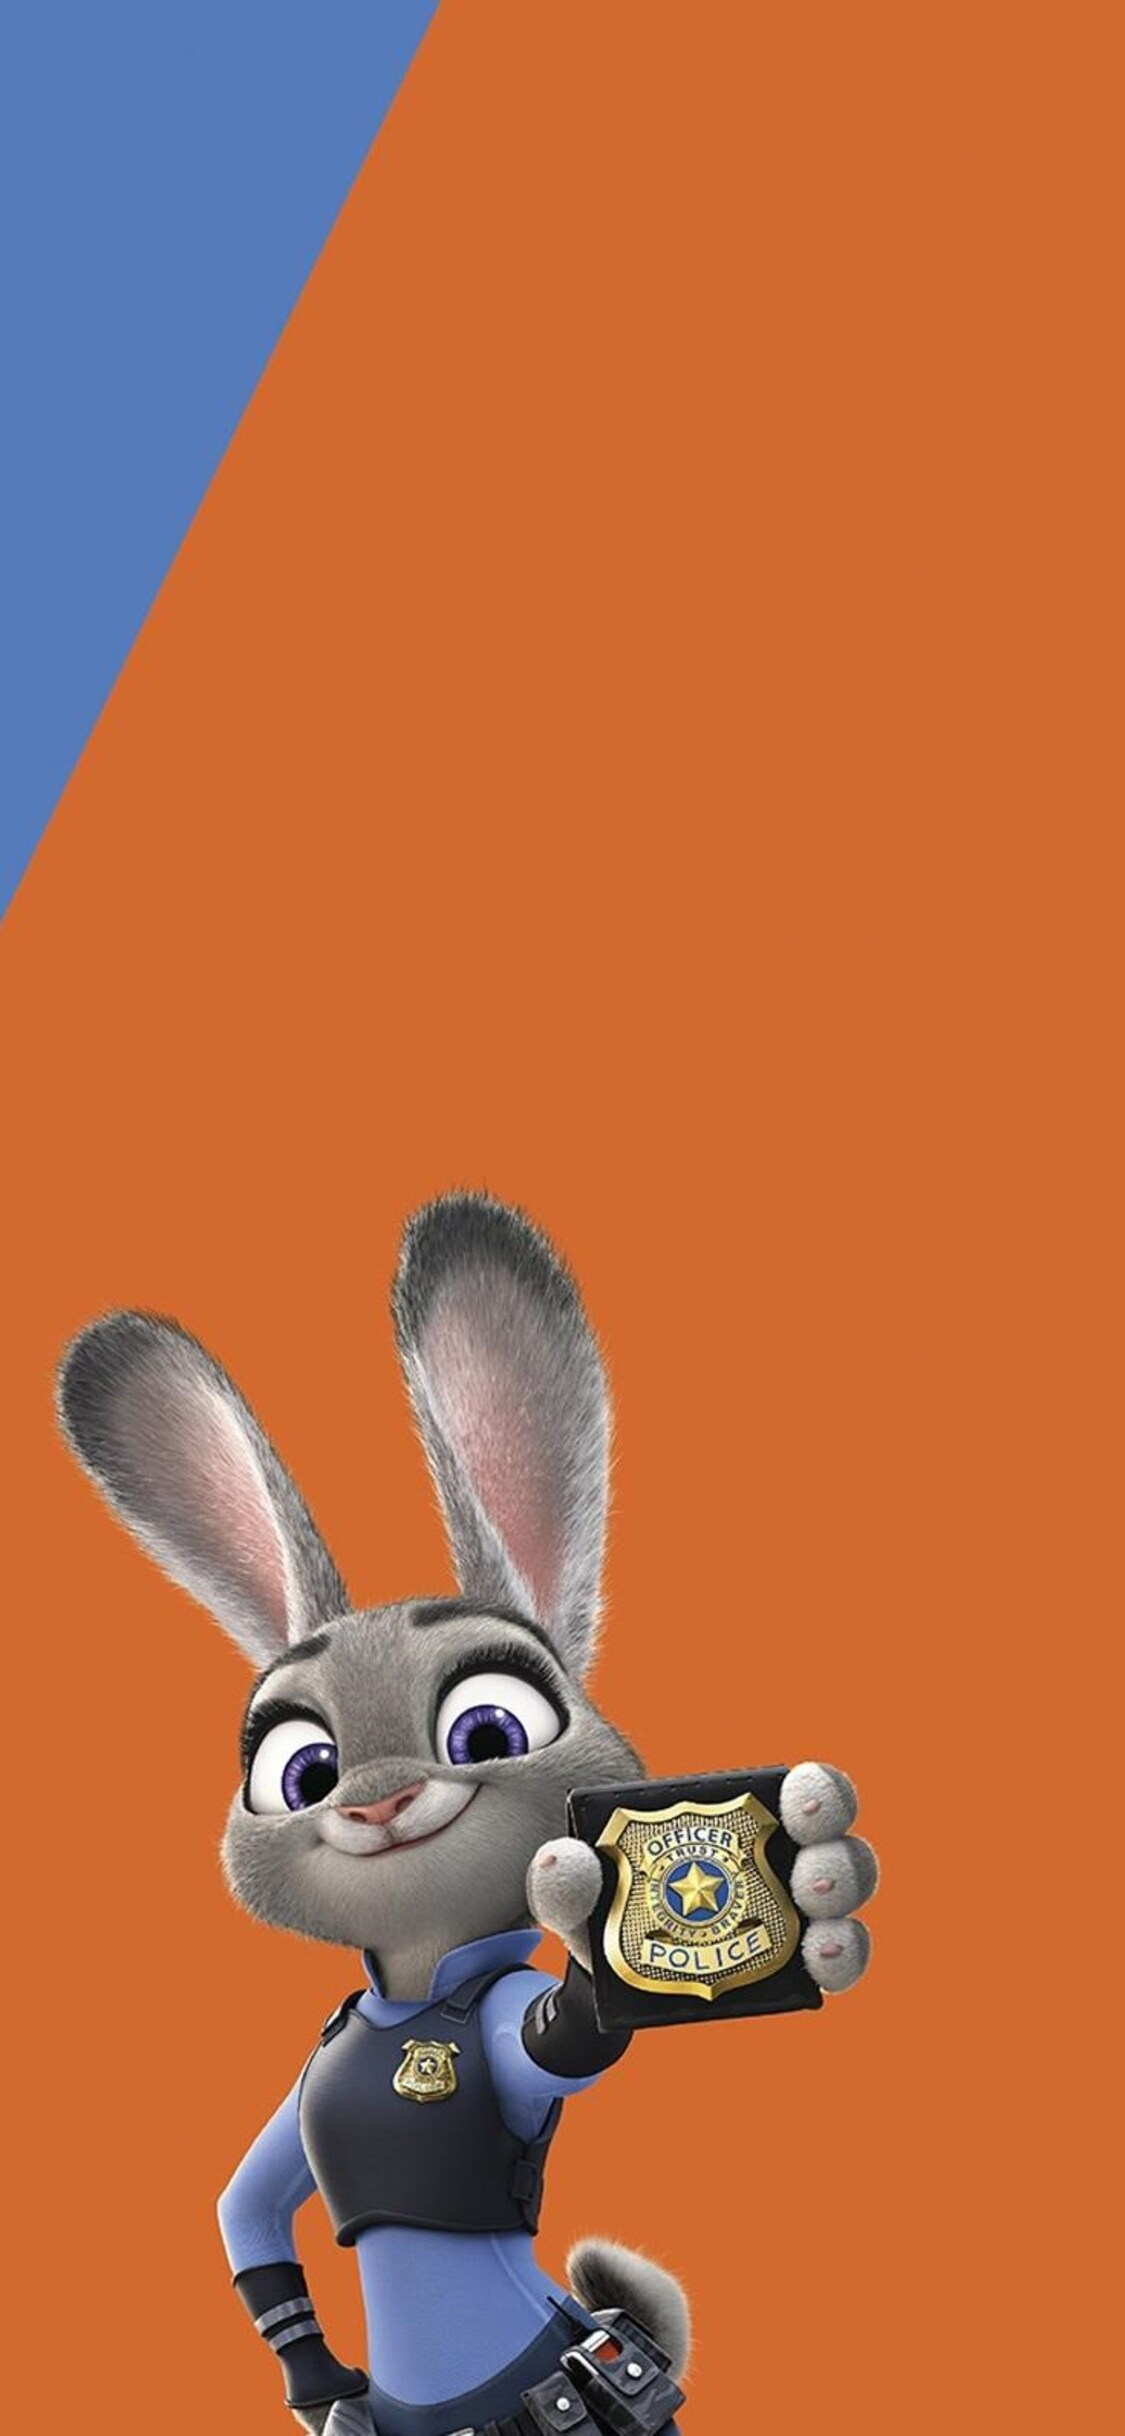 judy-hopps-and-nick-zootopia.jpg